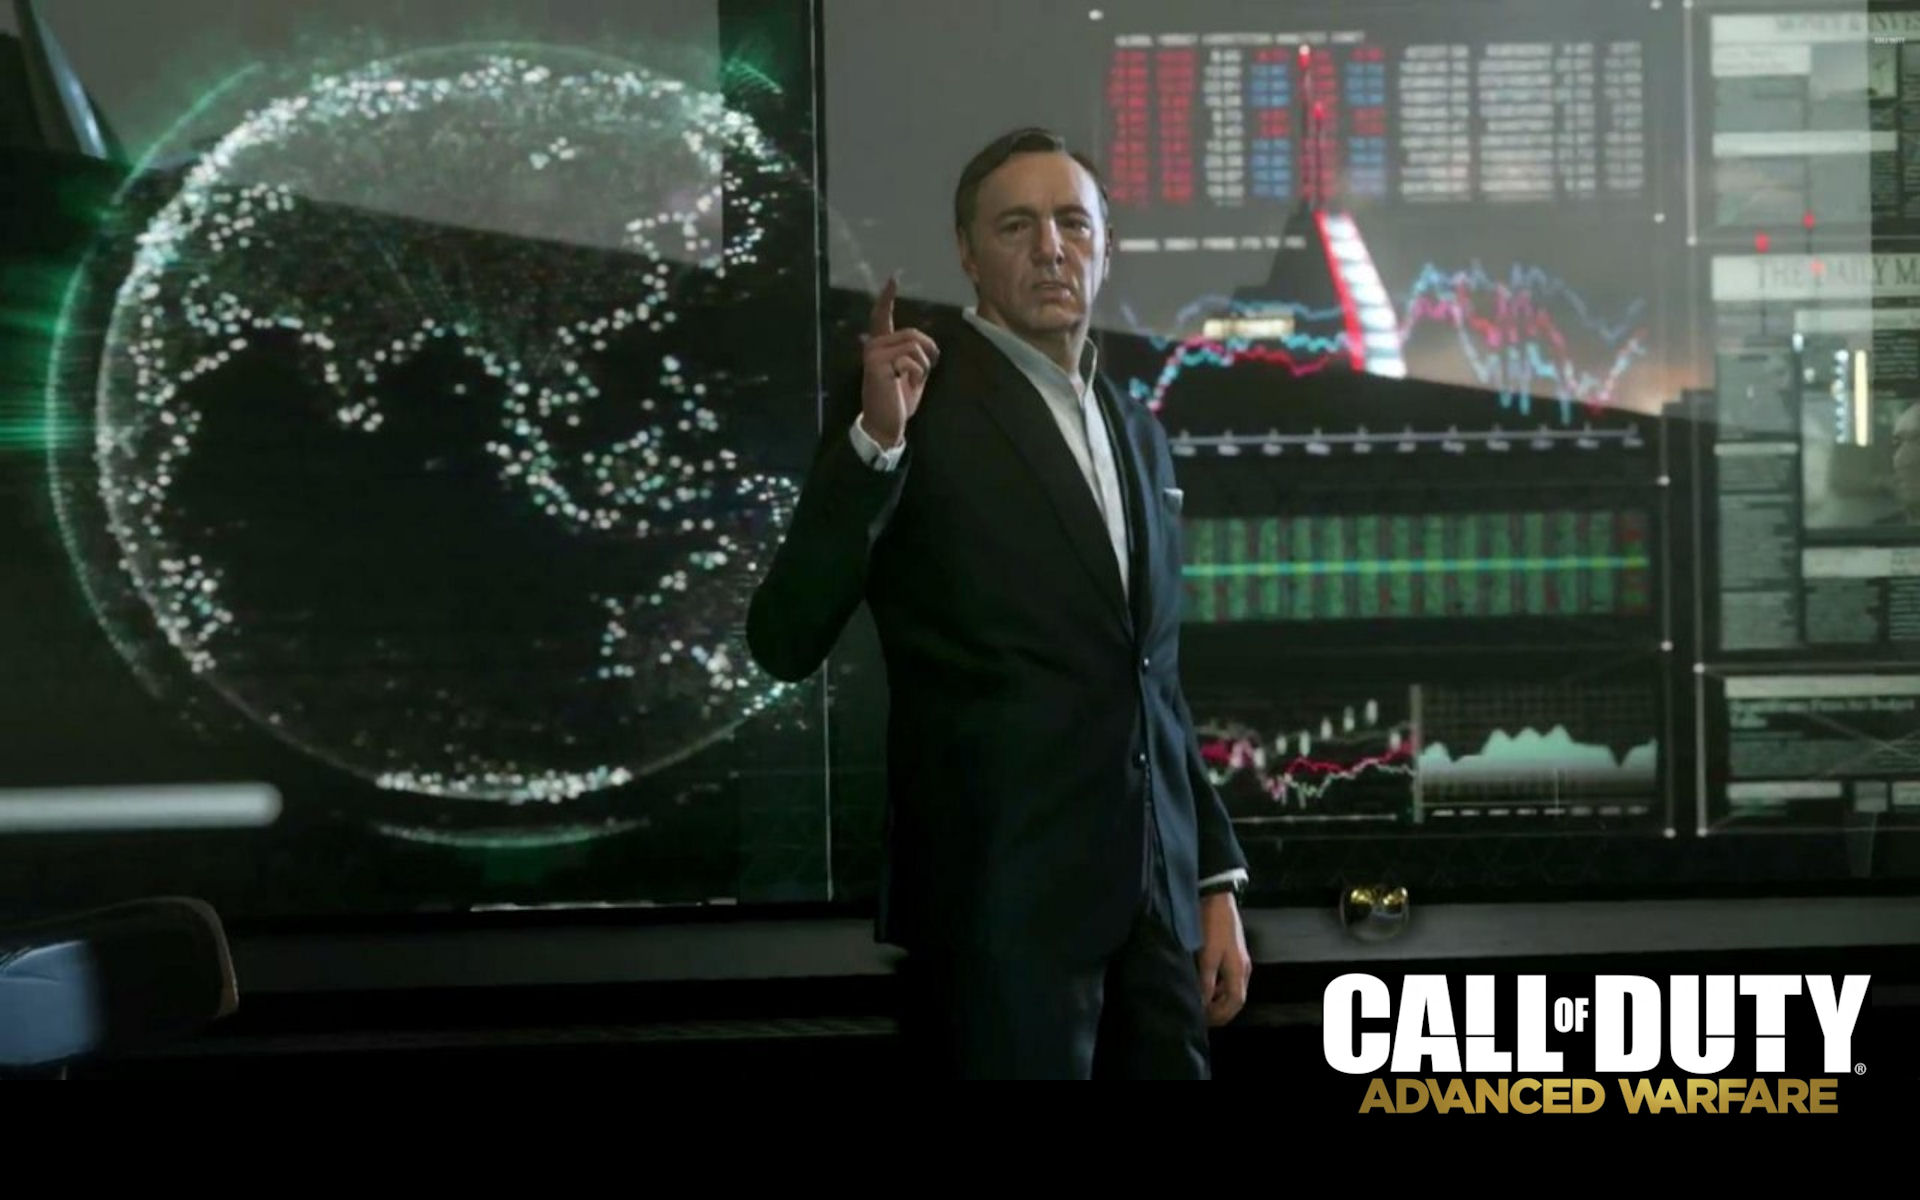 call-of-duty-advanced-warfare-kevin-spacey-wallpaper